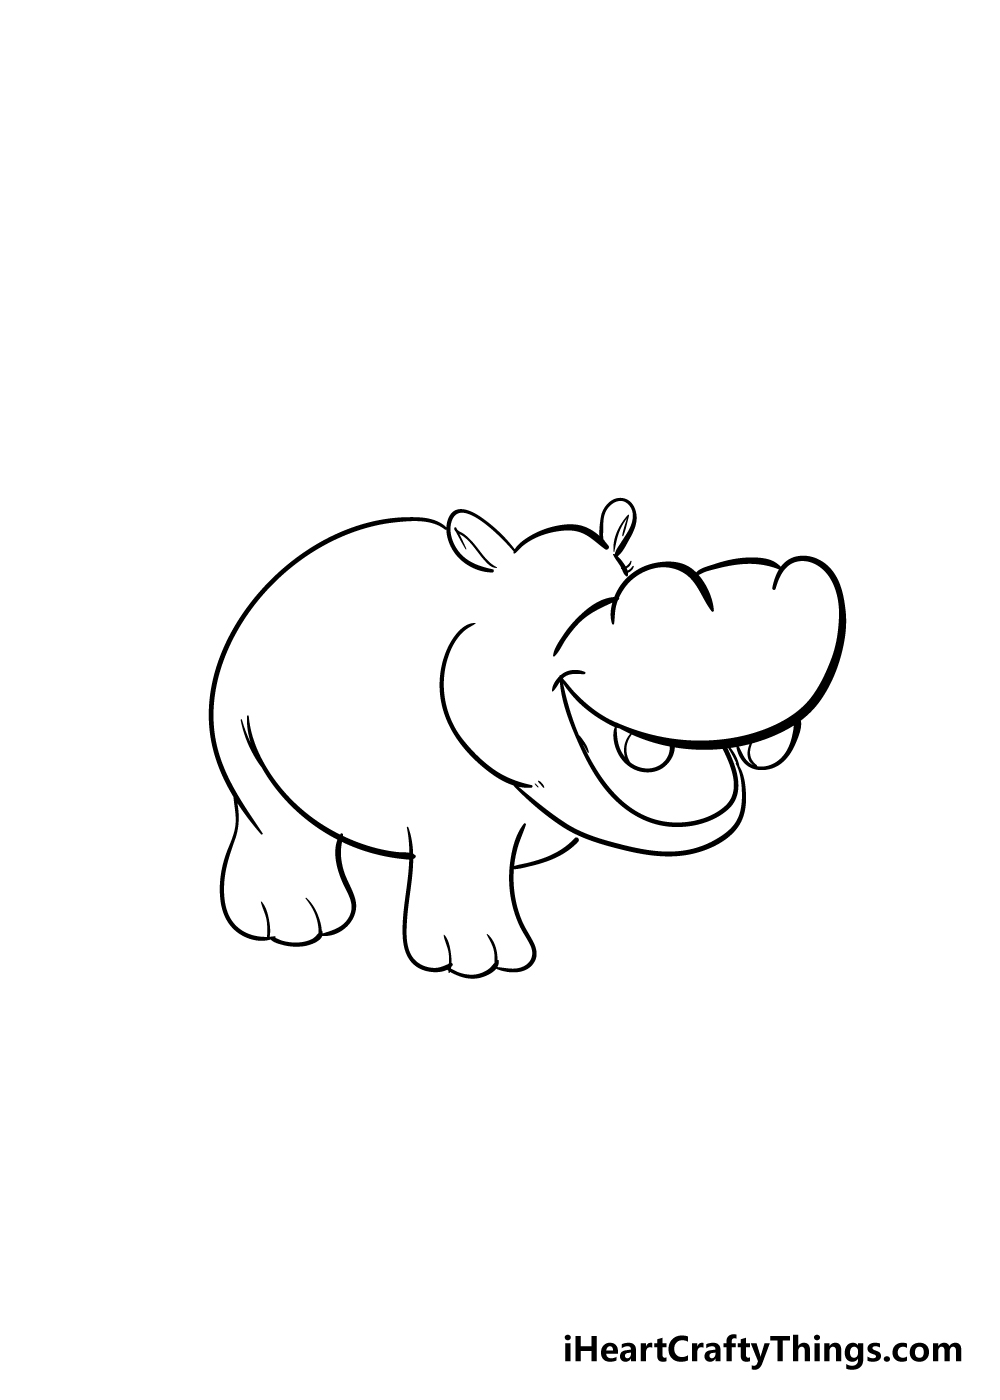 hippo drawing step 3